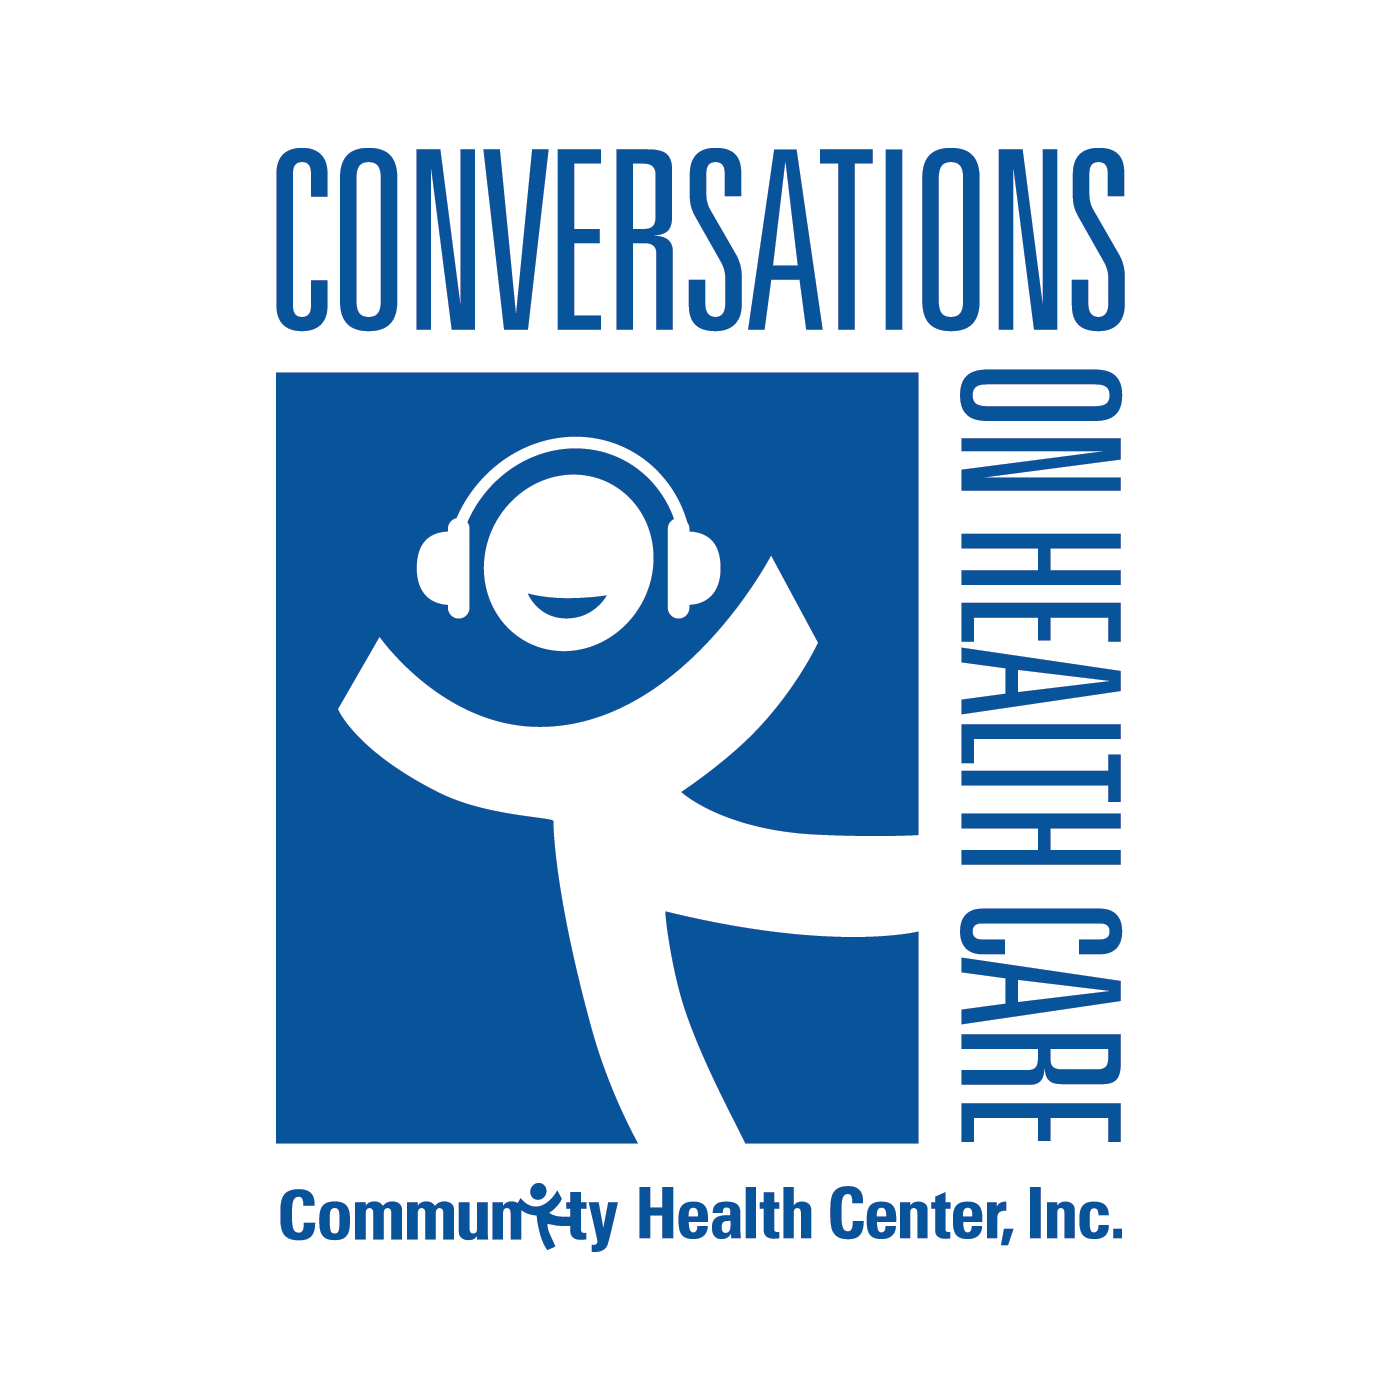 Conversations on Health Care